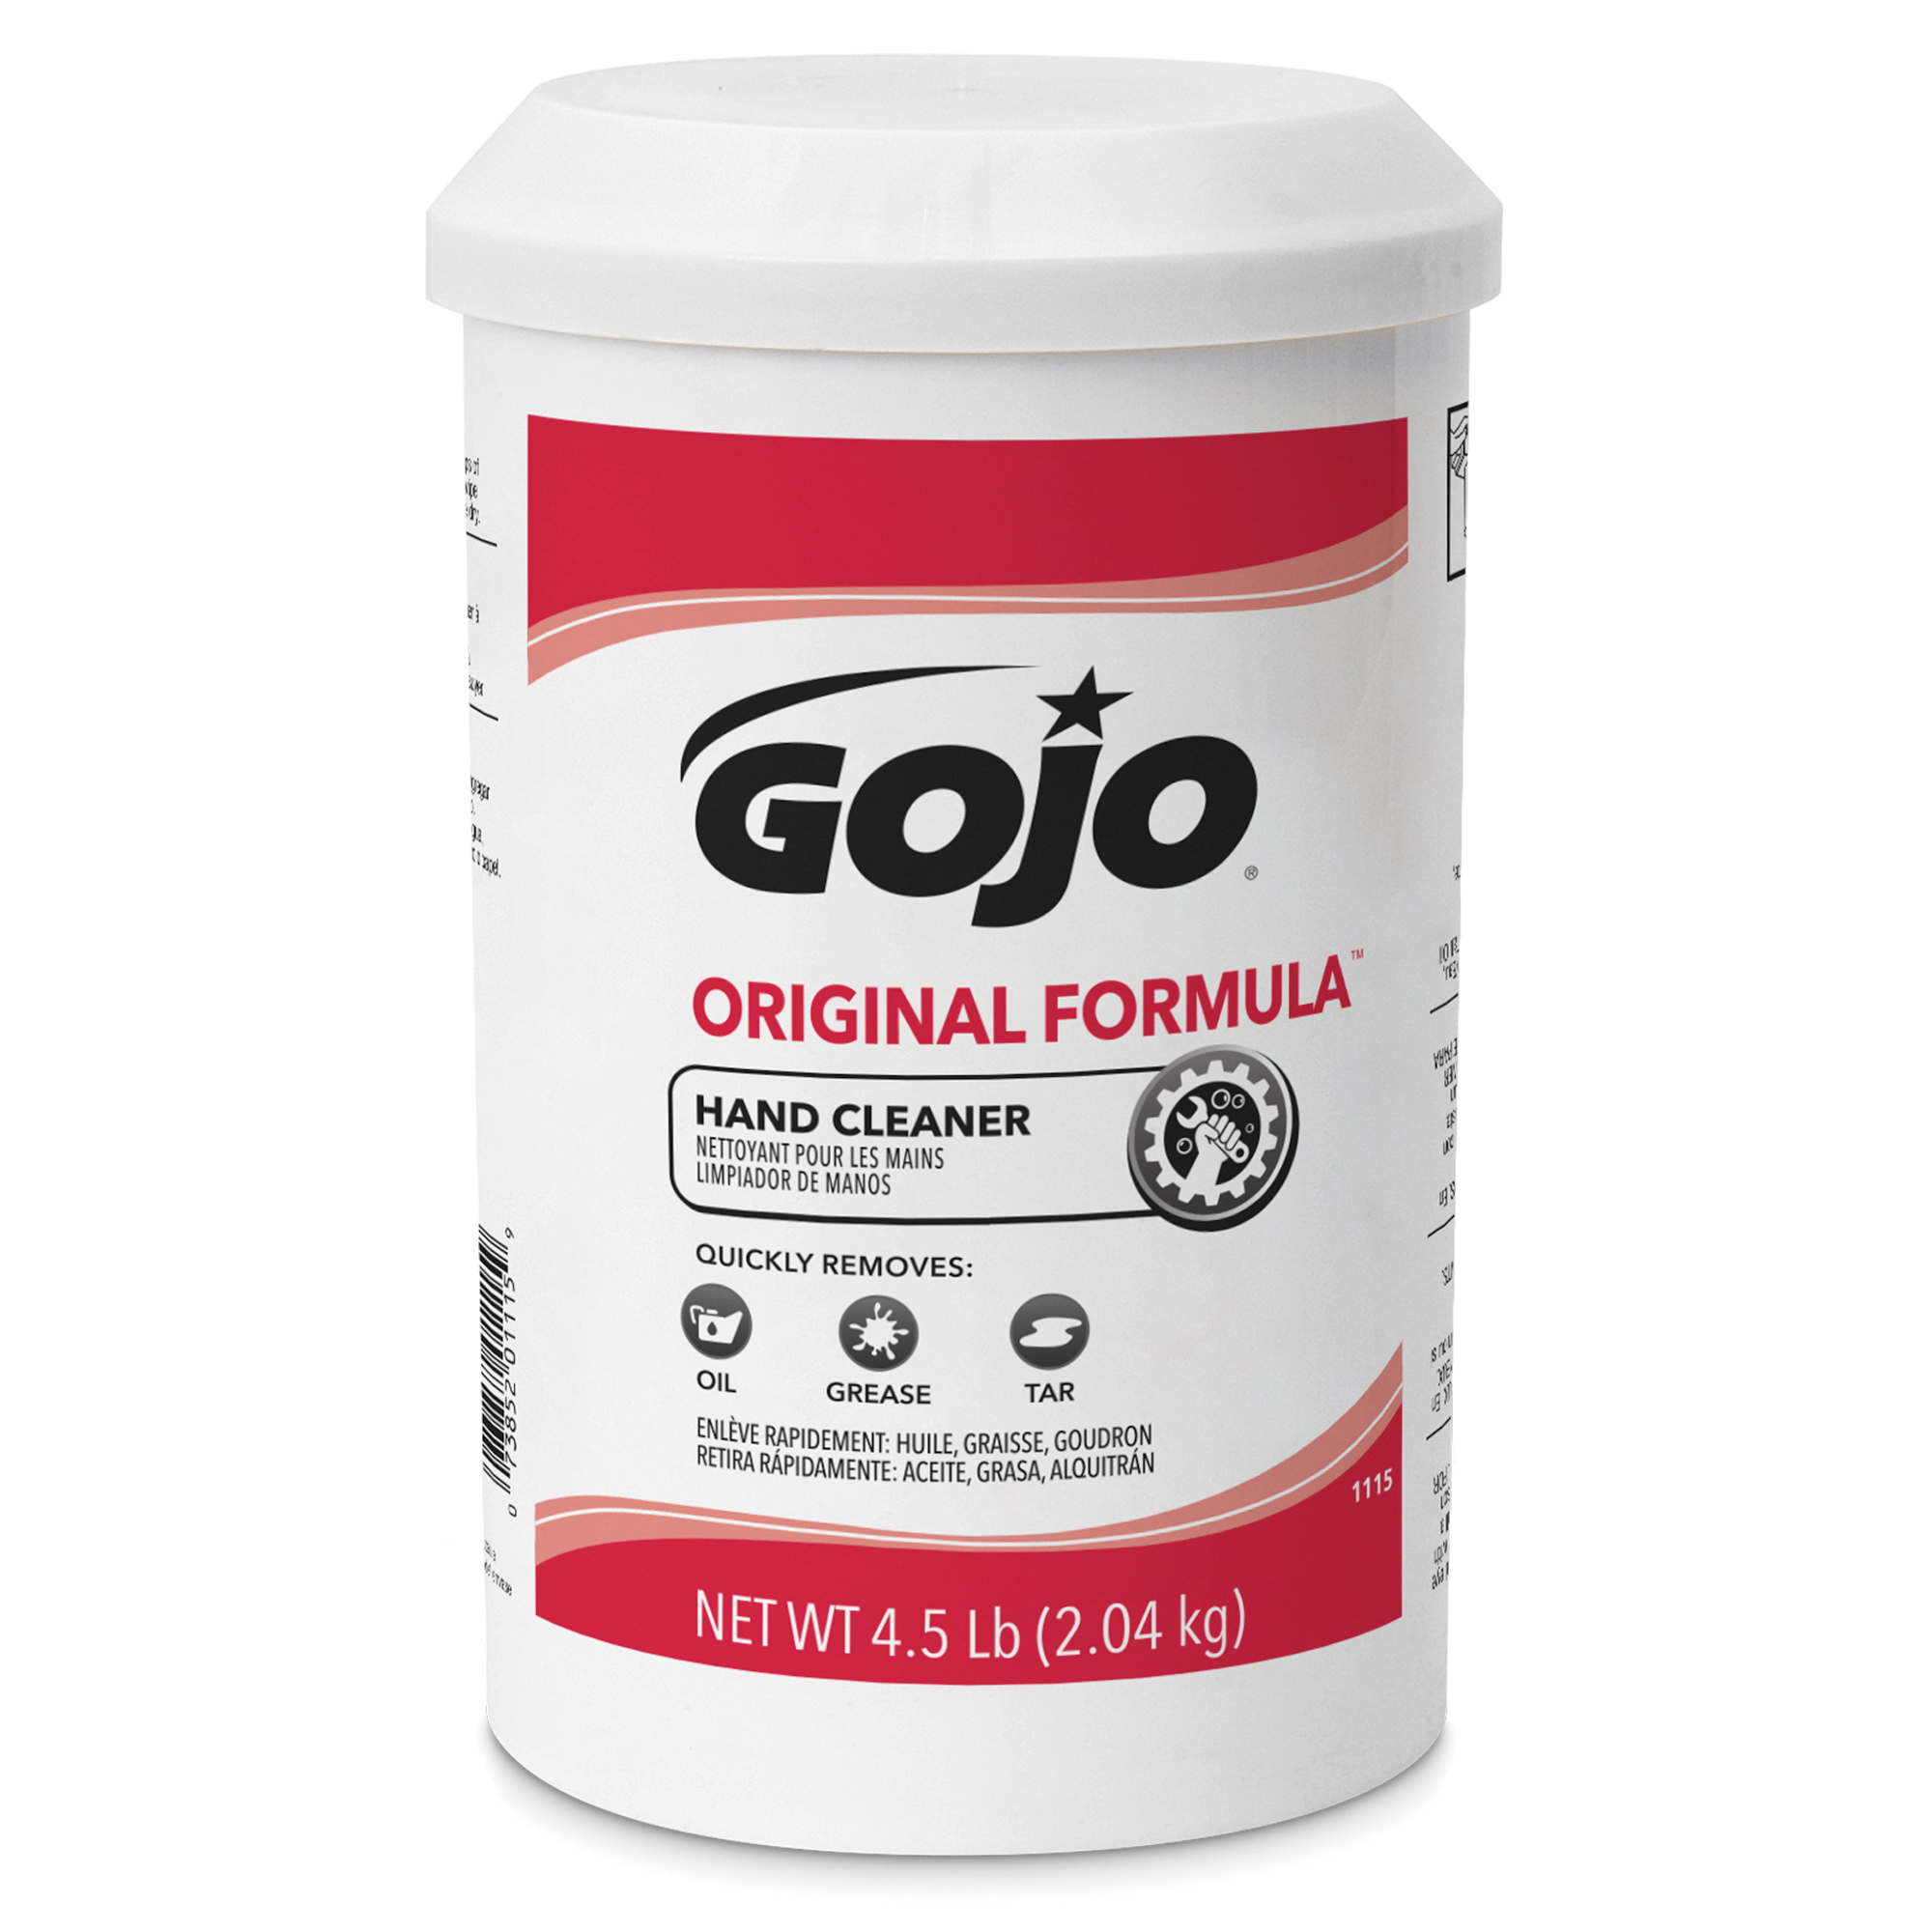 GOJO® 1115-06 ORIGINAL FORMULA™ Hand Cleaner, 4.5 lb Nominal, Cartridge Package, Creamy Form, Solvent Odor/Scent, Opaque White/Yellow